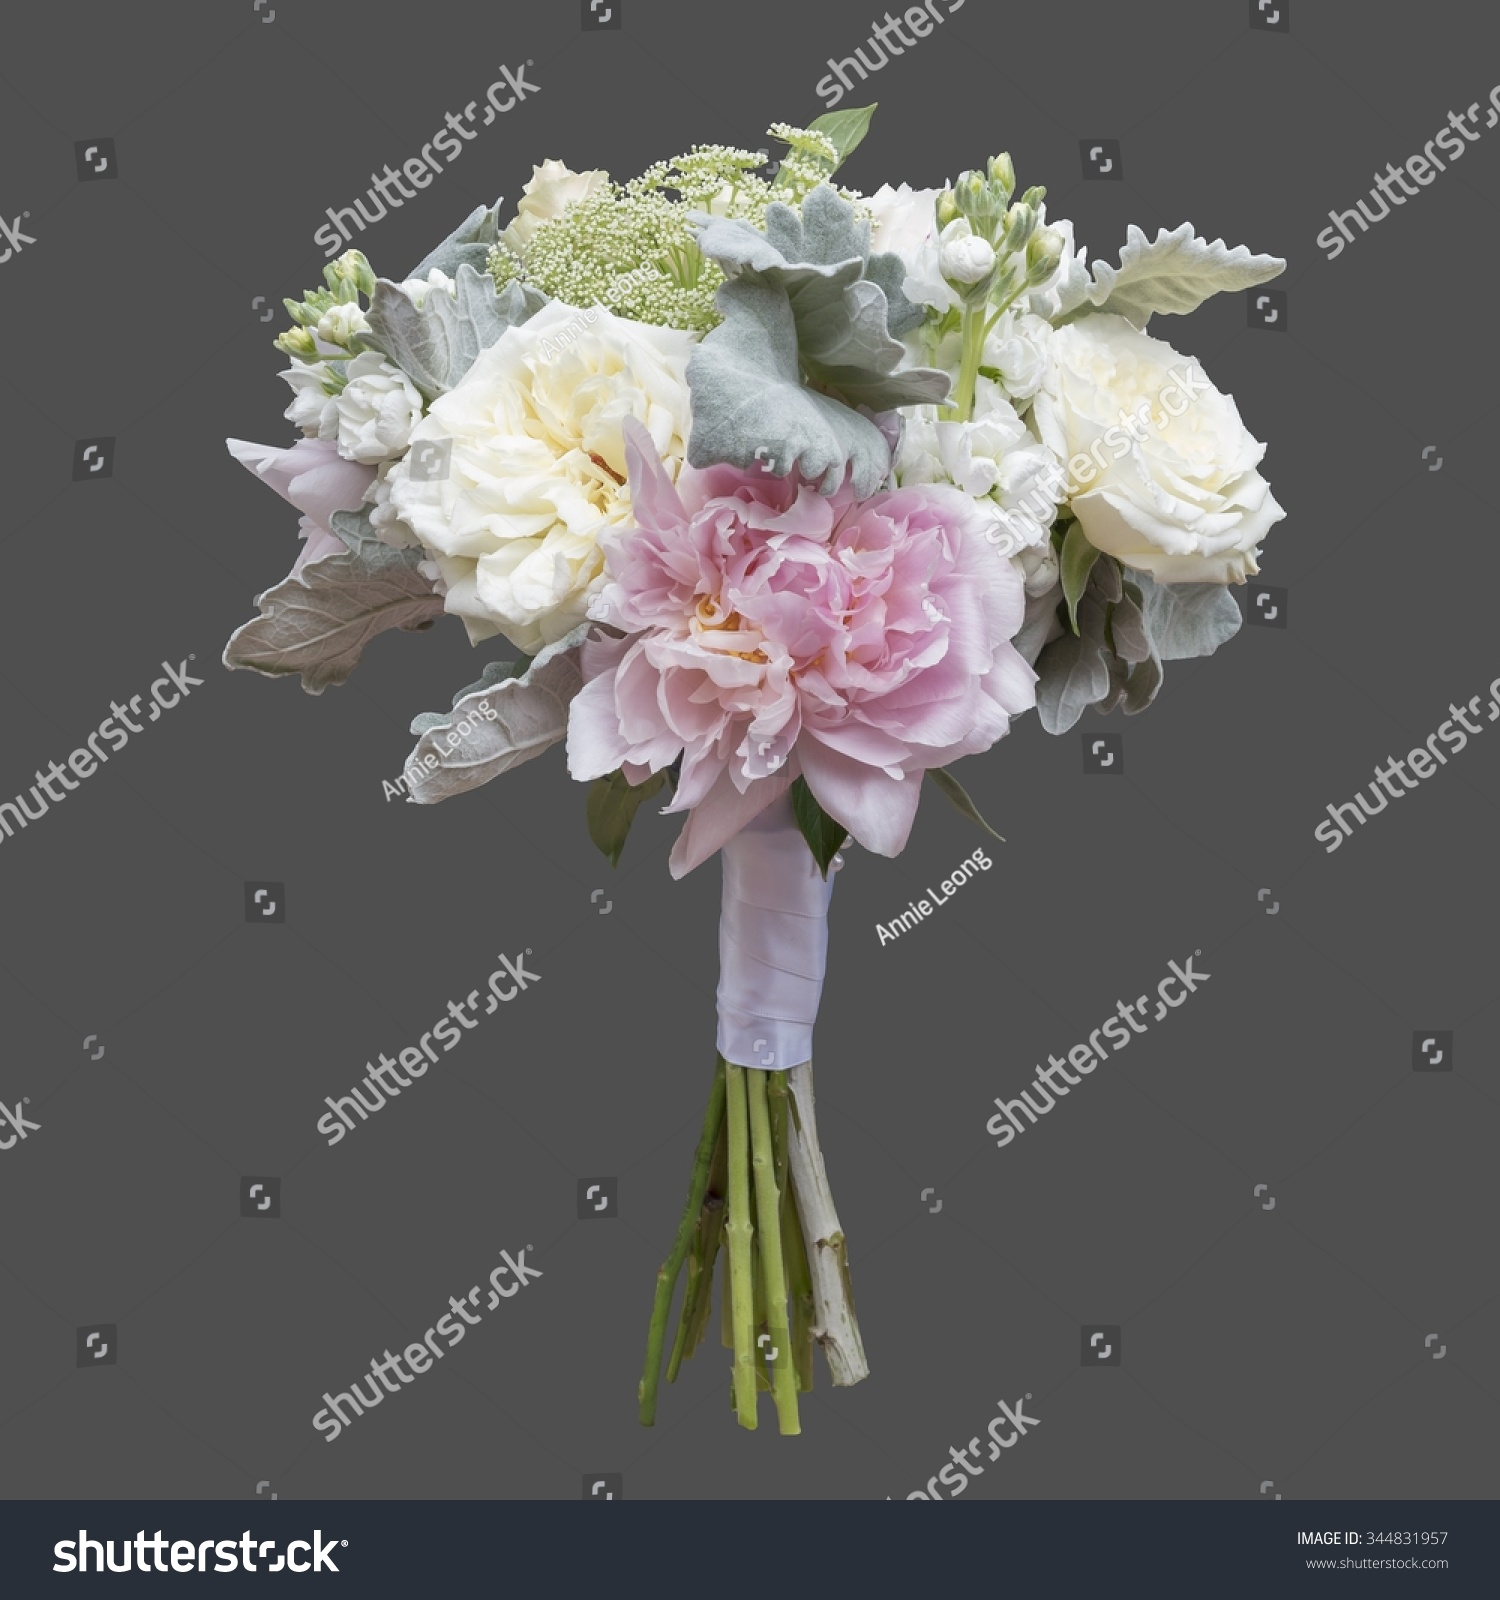 White Pink Peony And Garden Rose Bridal Bouquet Isolated On Grey Background